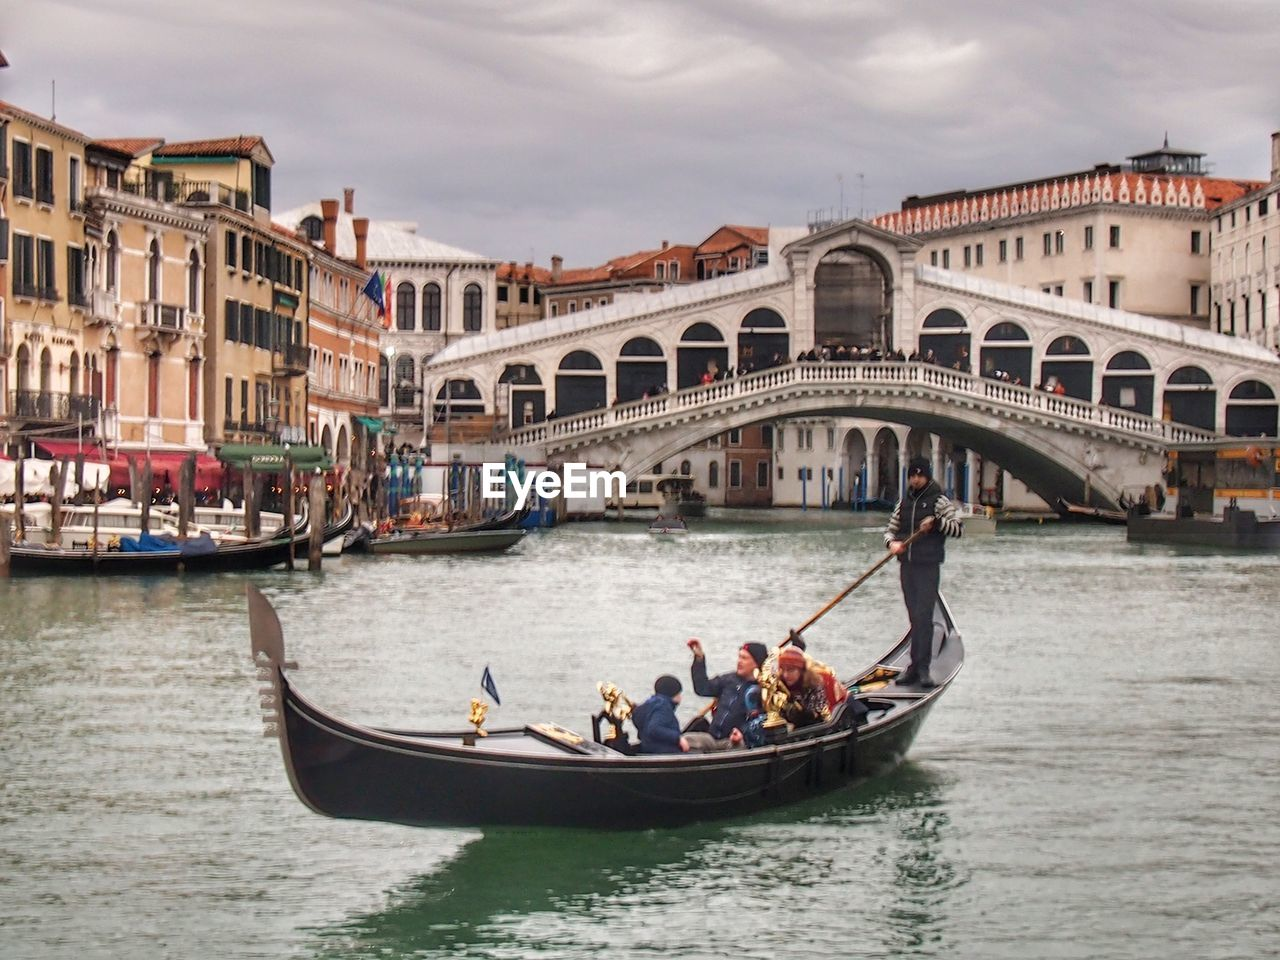 architecture, built structure, building exterior, men, transportation, real people, gondola - traditional boat, canal, gondolier, large group of people, nautical vessel, tourism, day, travel destinations, oar, water, women, outdoors, sky, rowing, city, adult, people